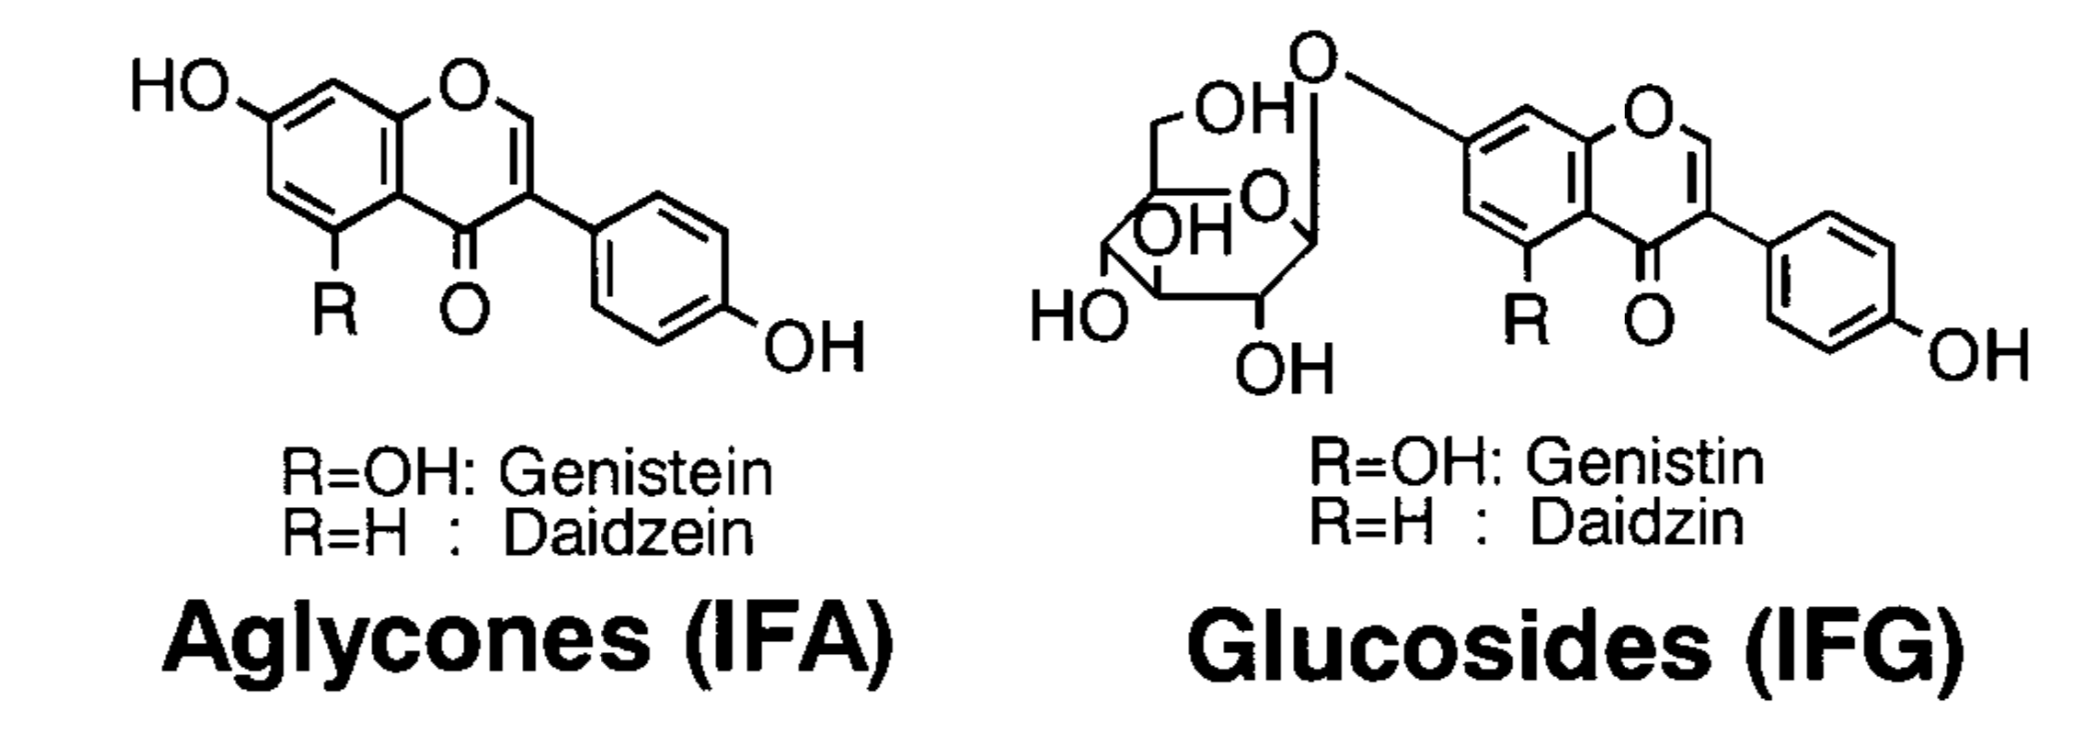 aglycone-vs-glucosides.png